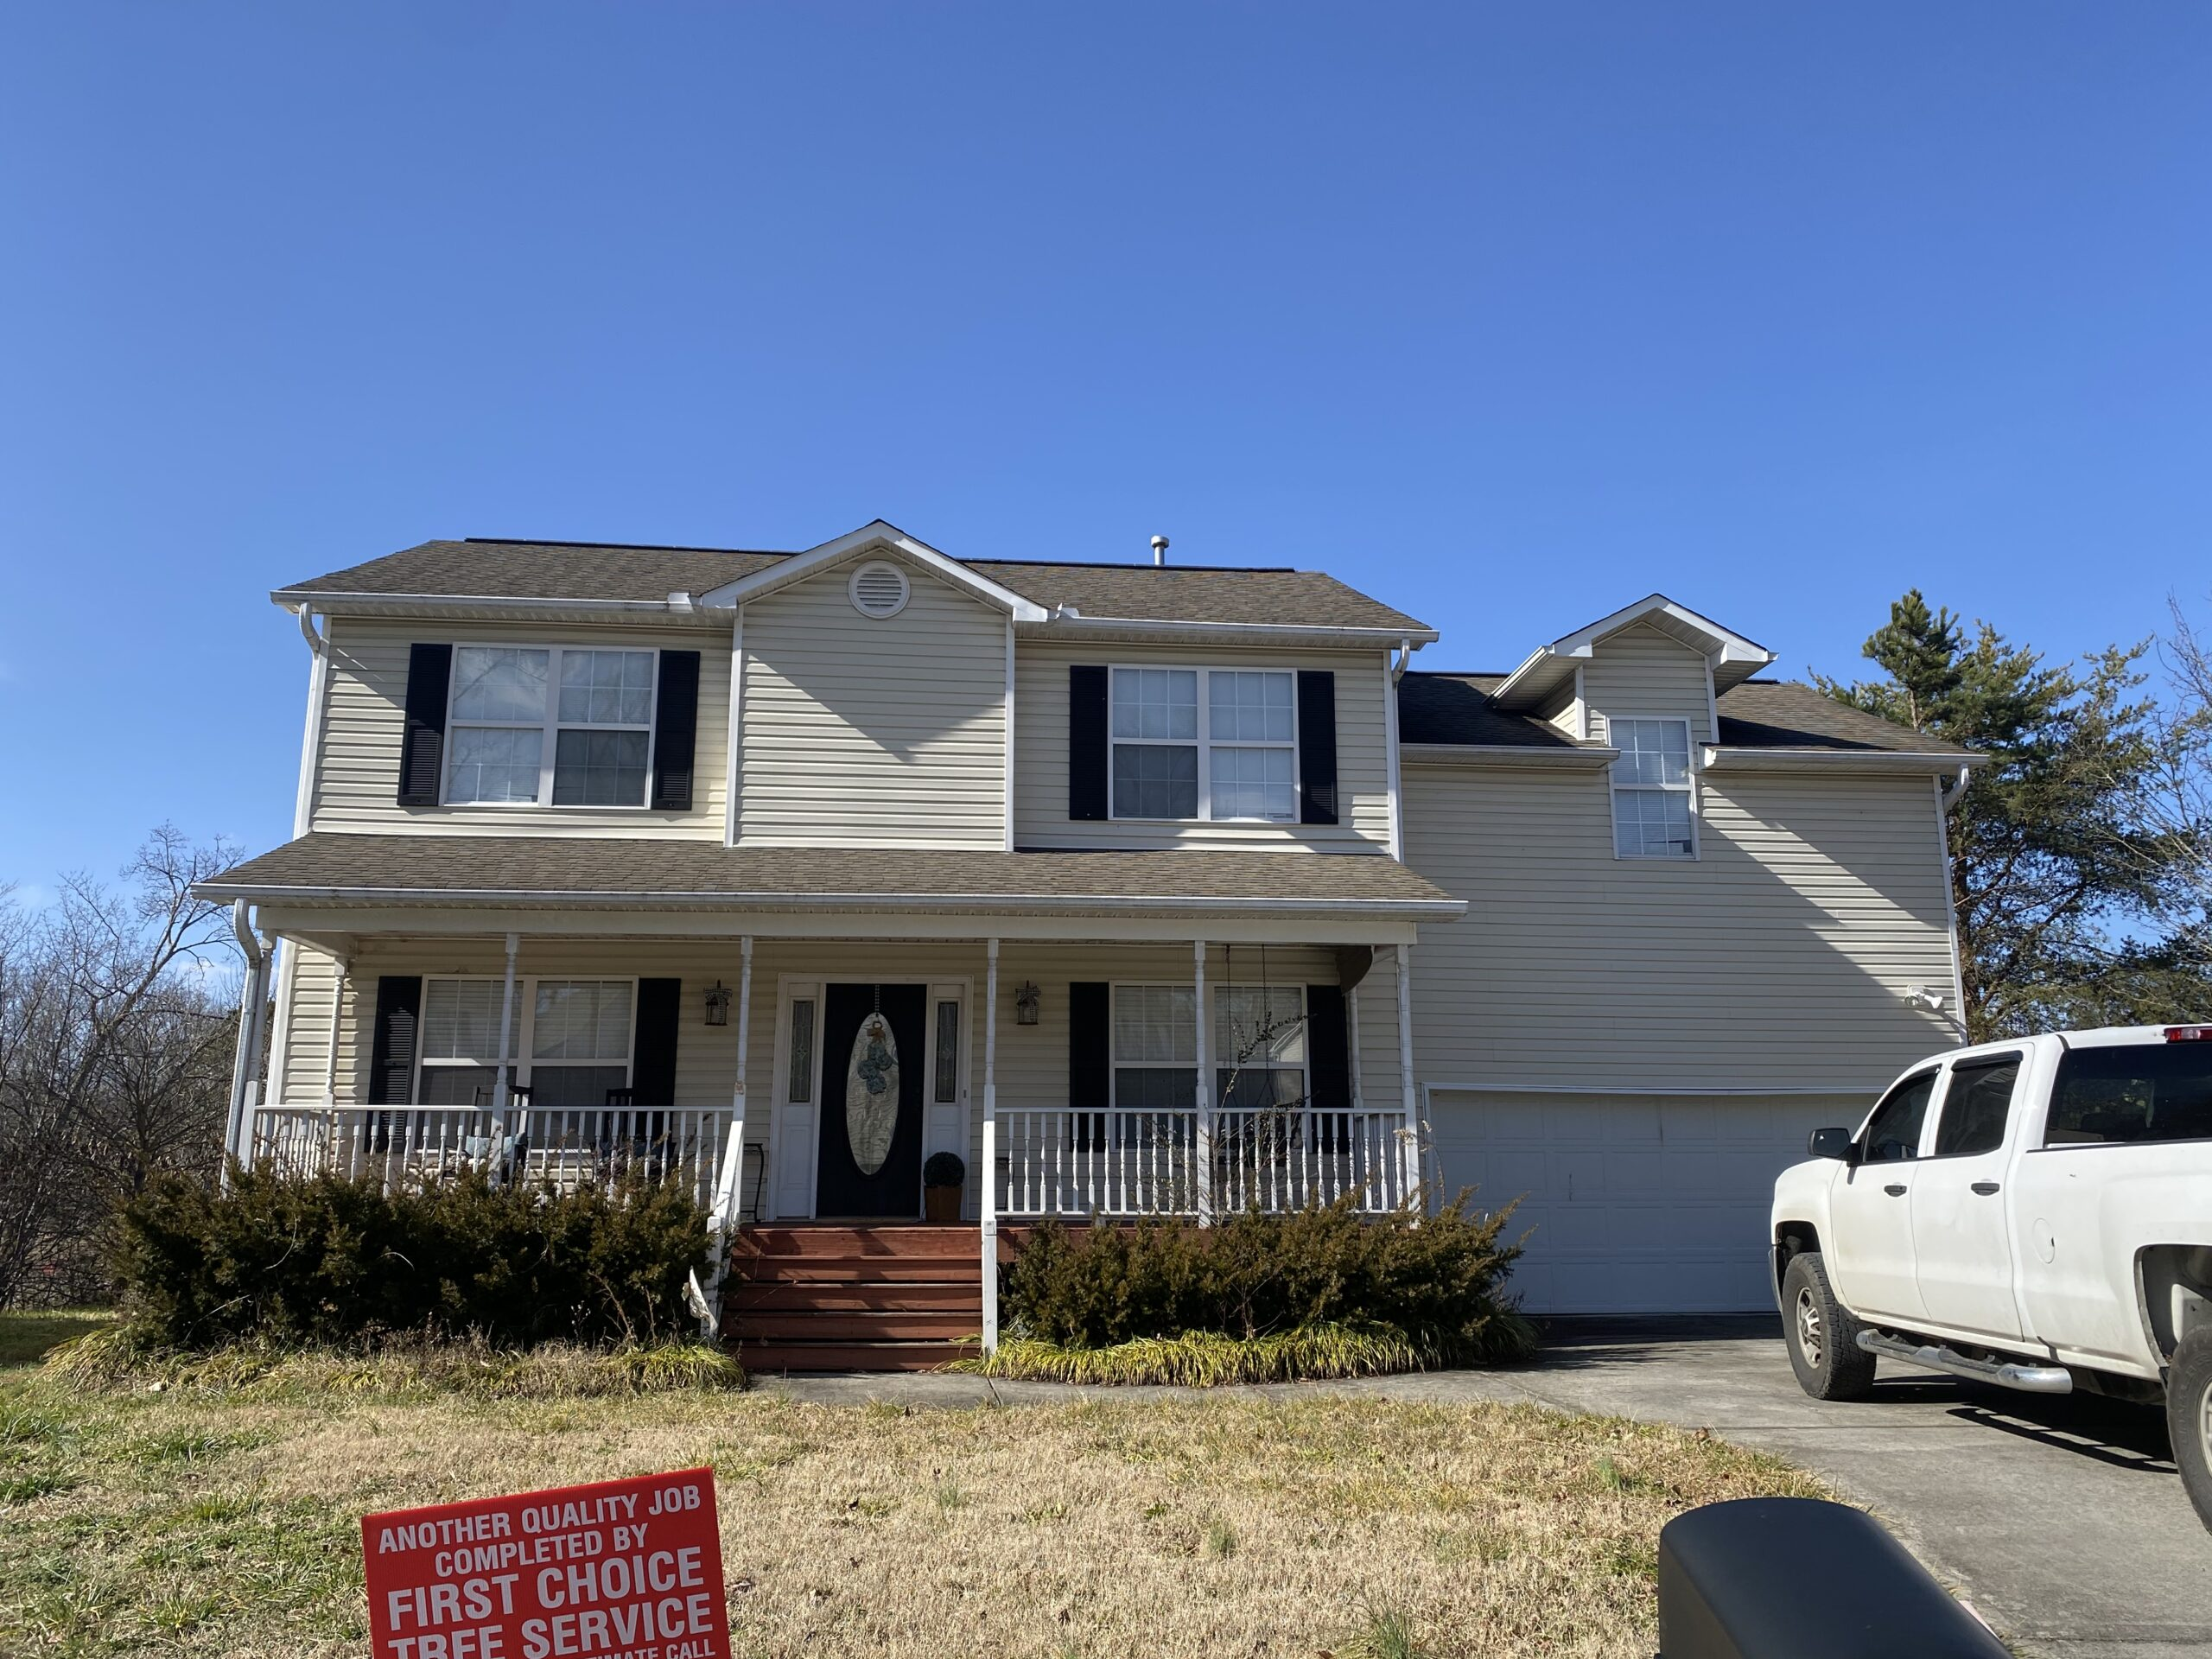 This is a picture of a two story white home with fascia damage